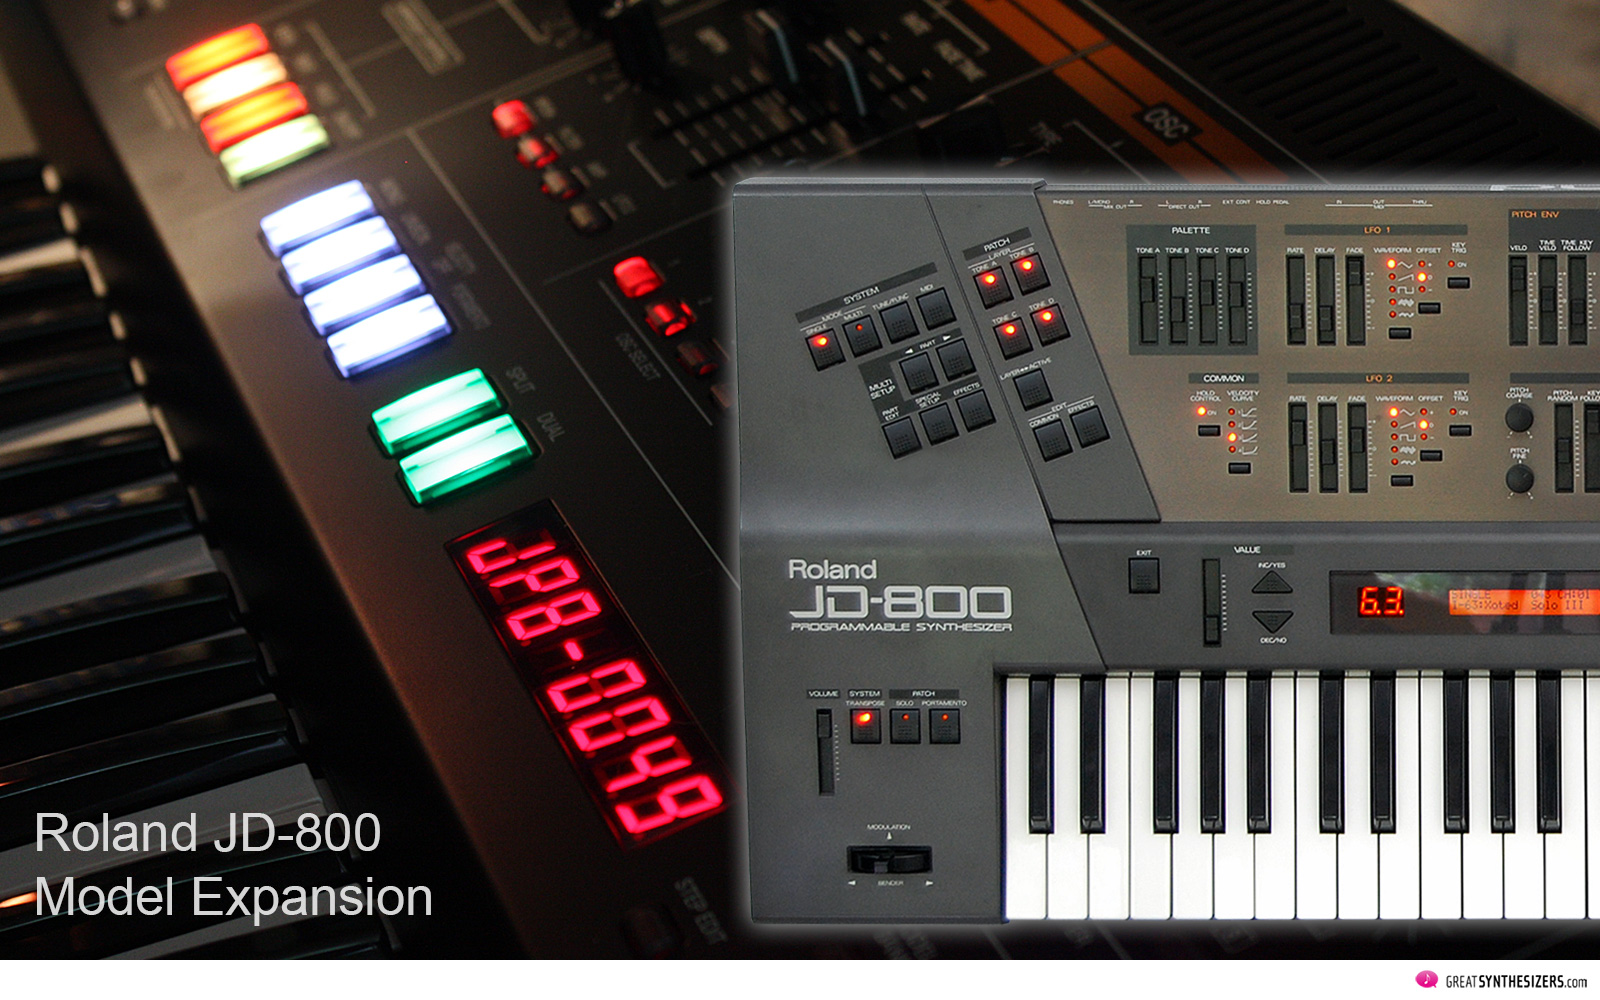 Roland JD-800 Model Expansion Software Synthesizer